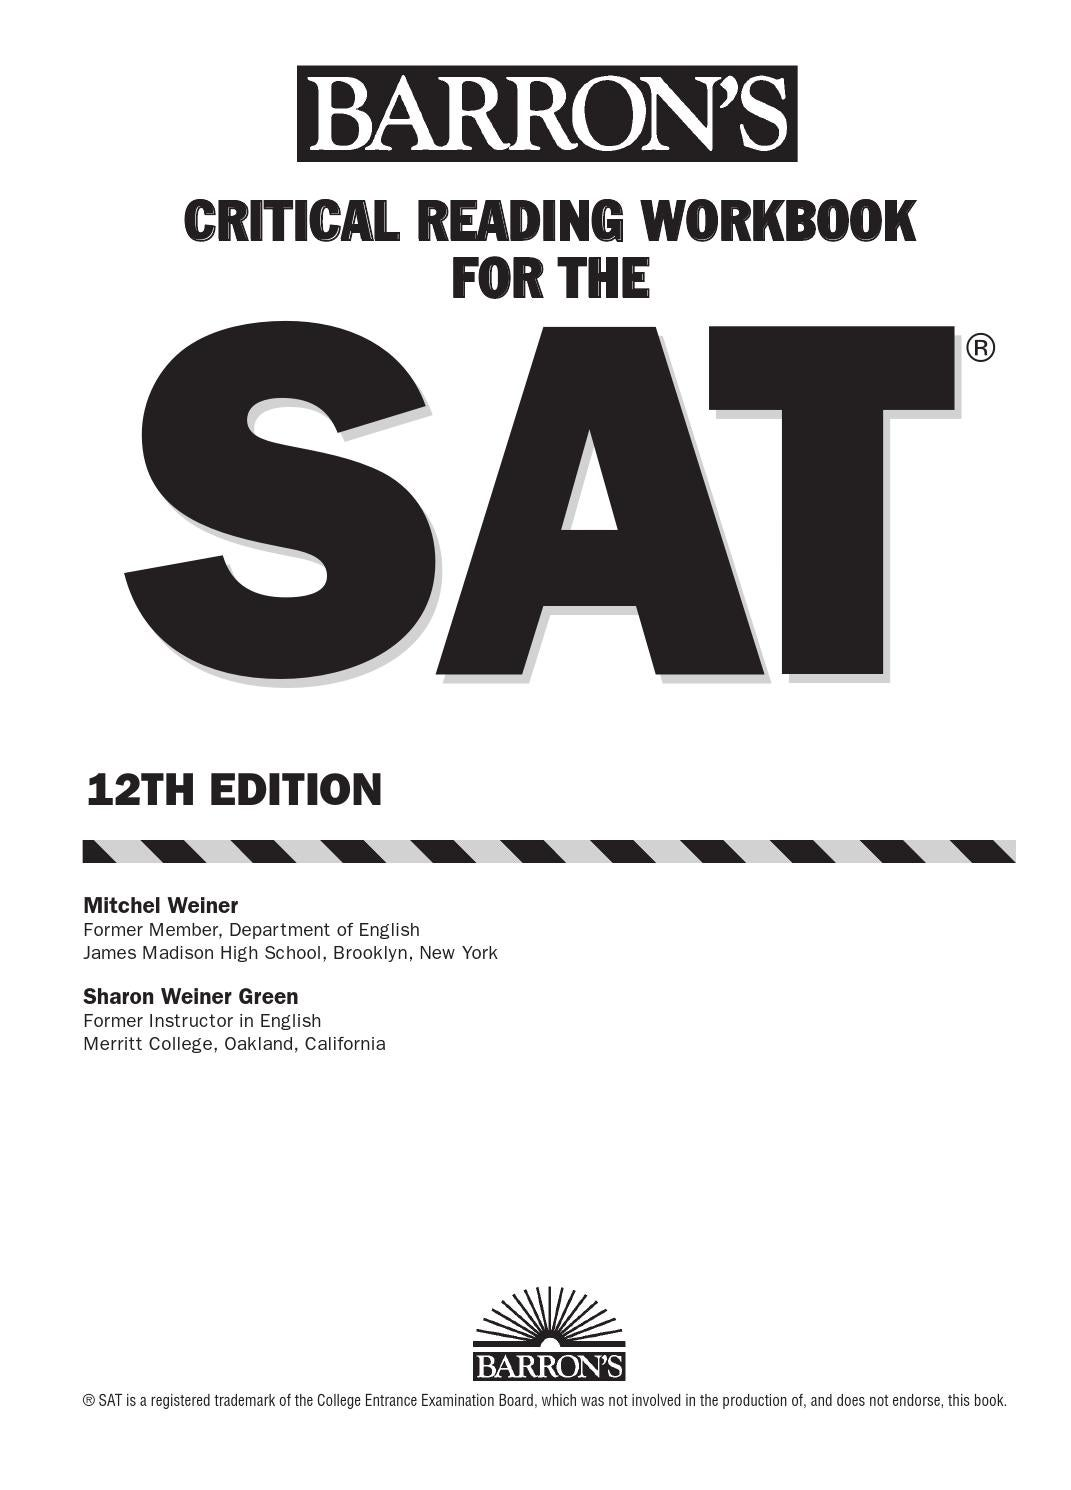 Preview barron's critical reading workbook for the new sat